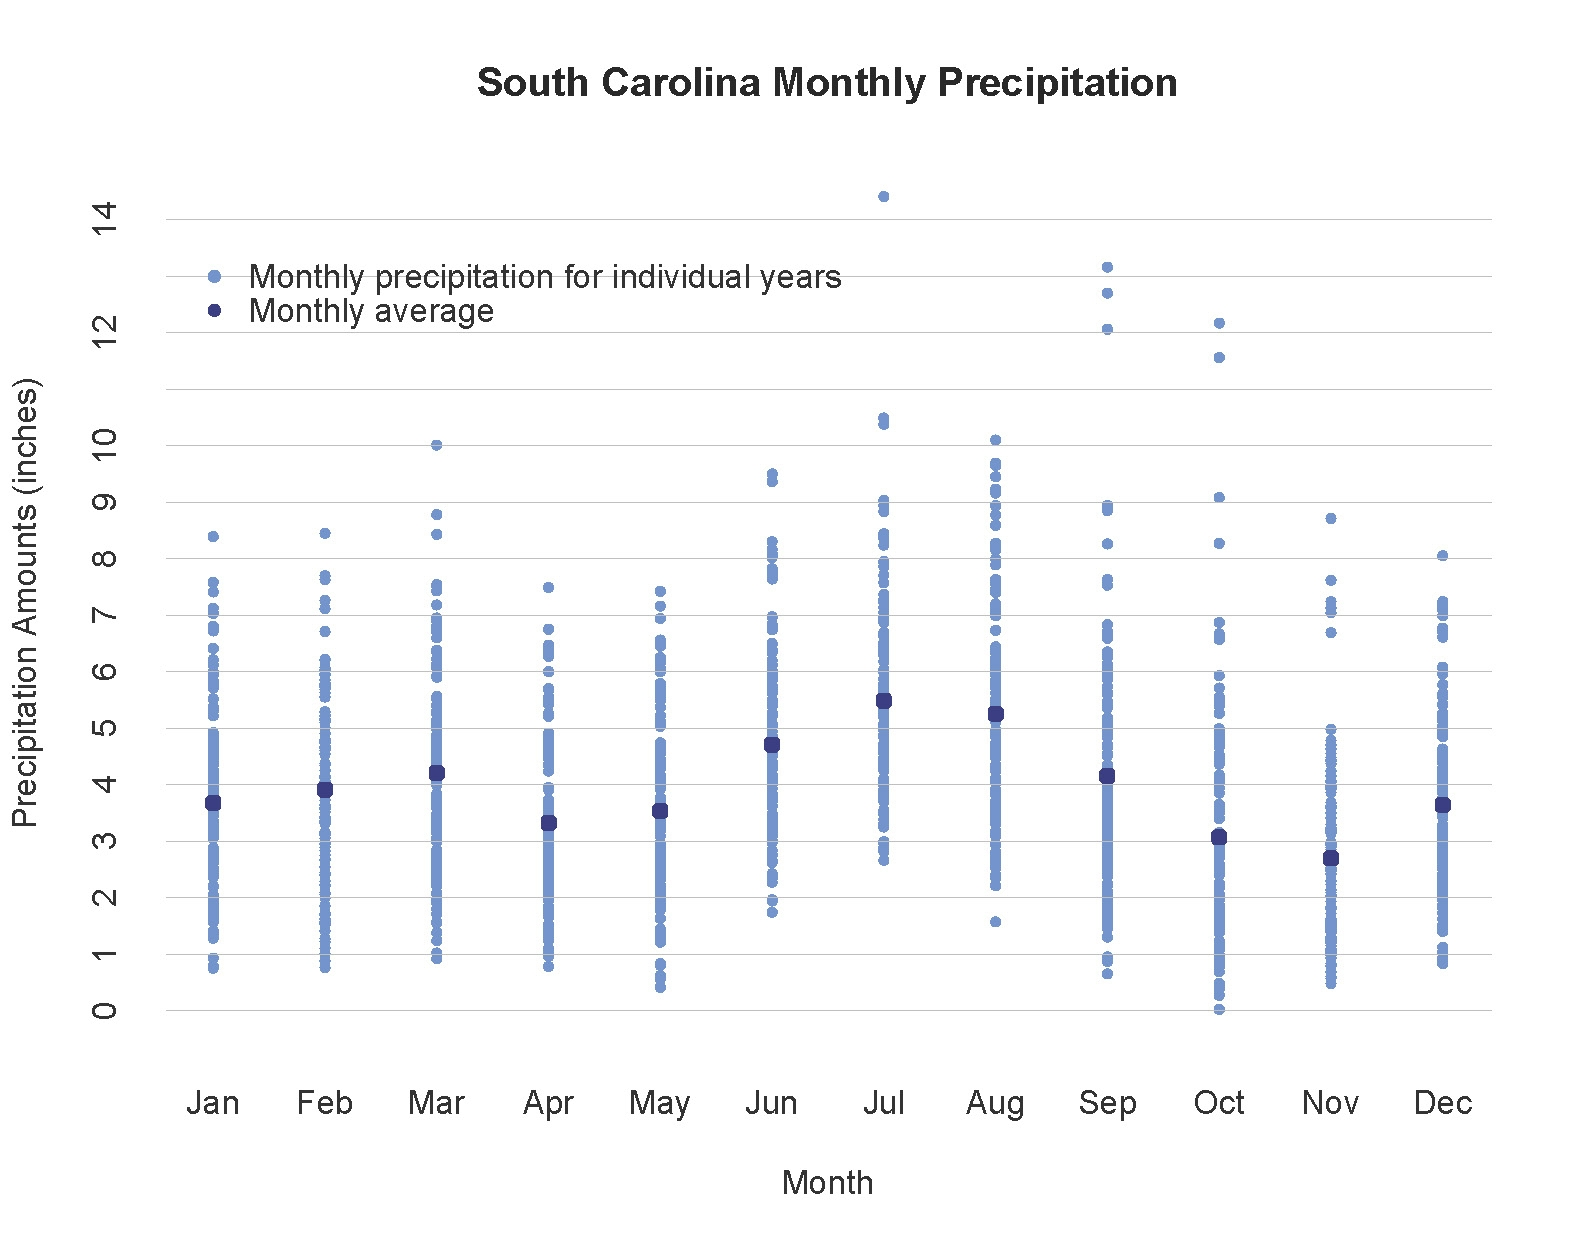 Chart of monthly precipitation showing seasonal changes from data ranging 1895 to 2016.